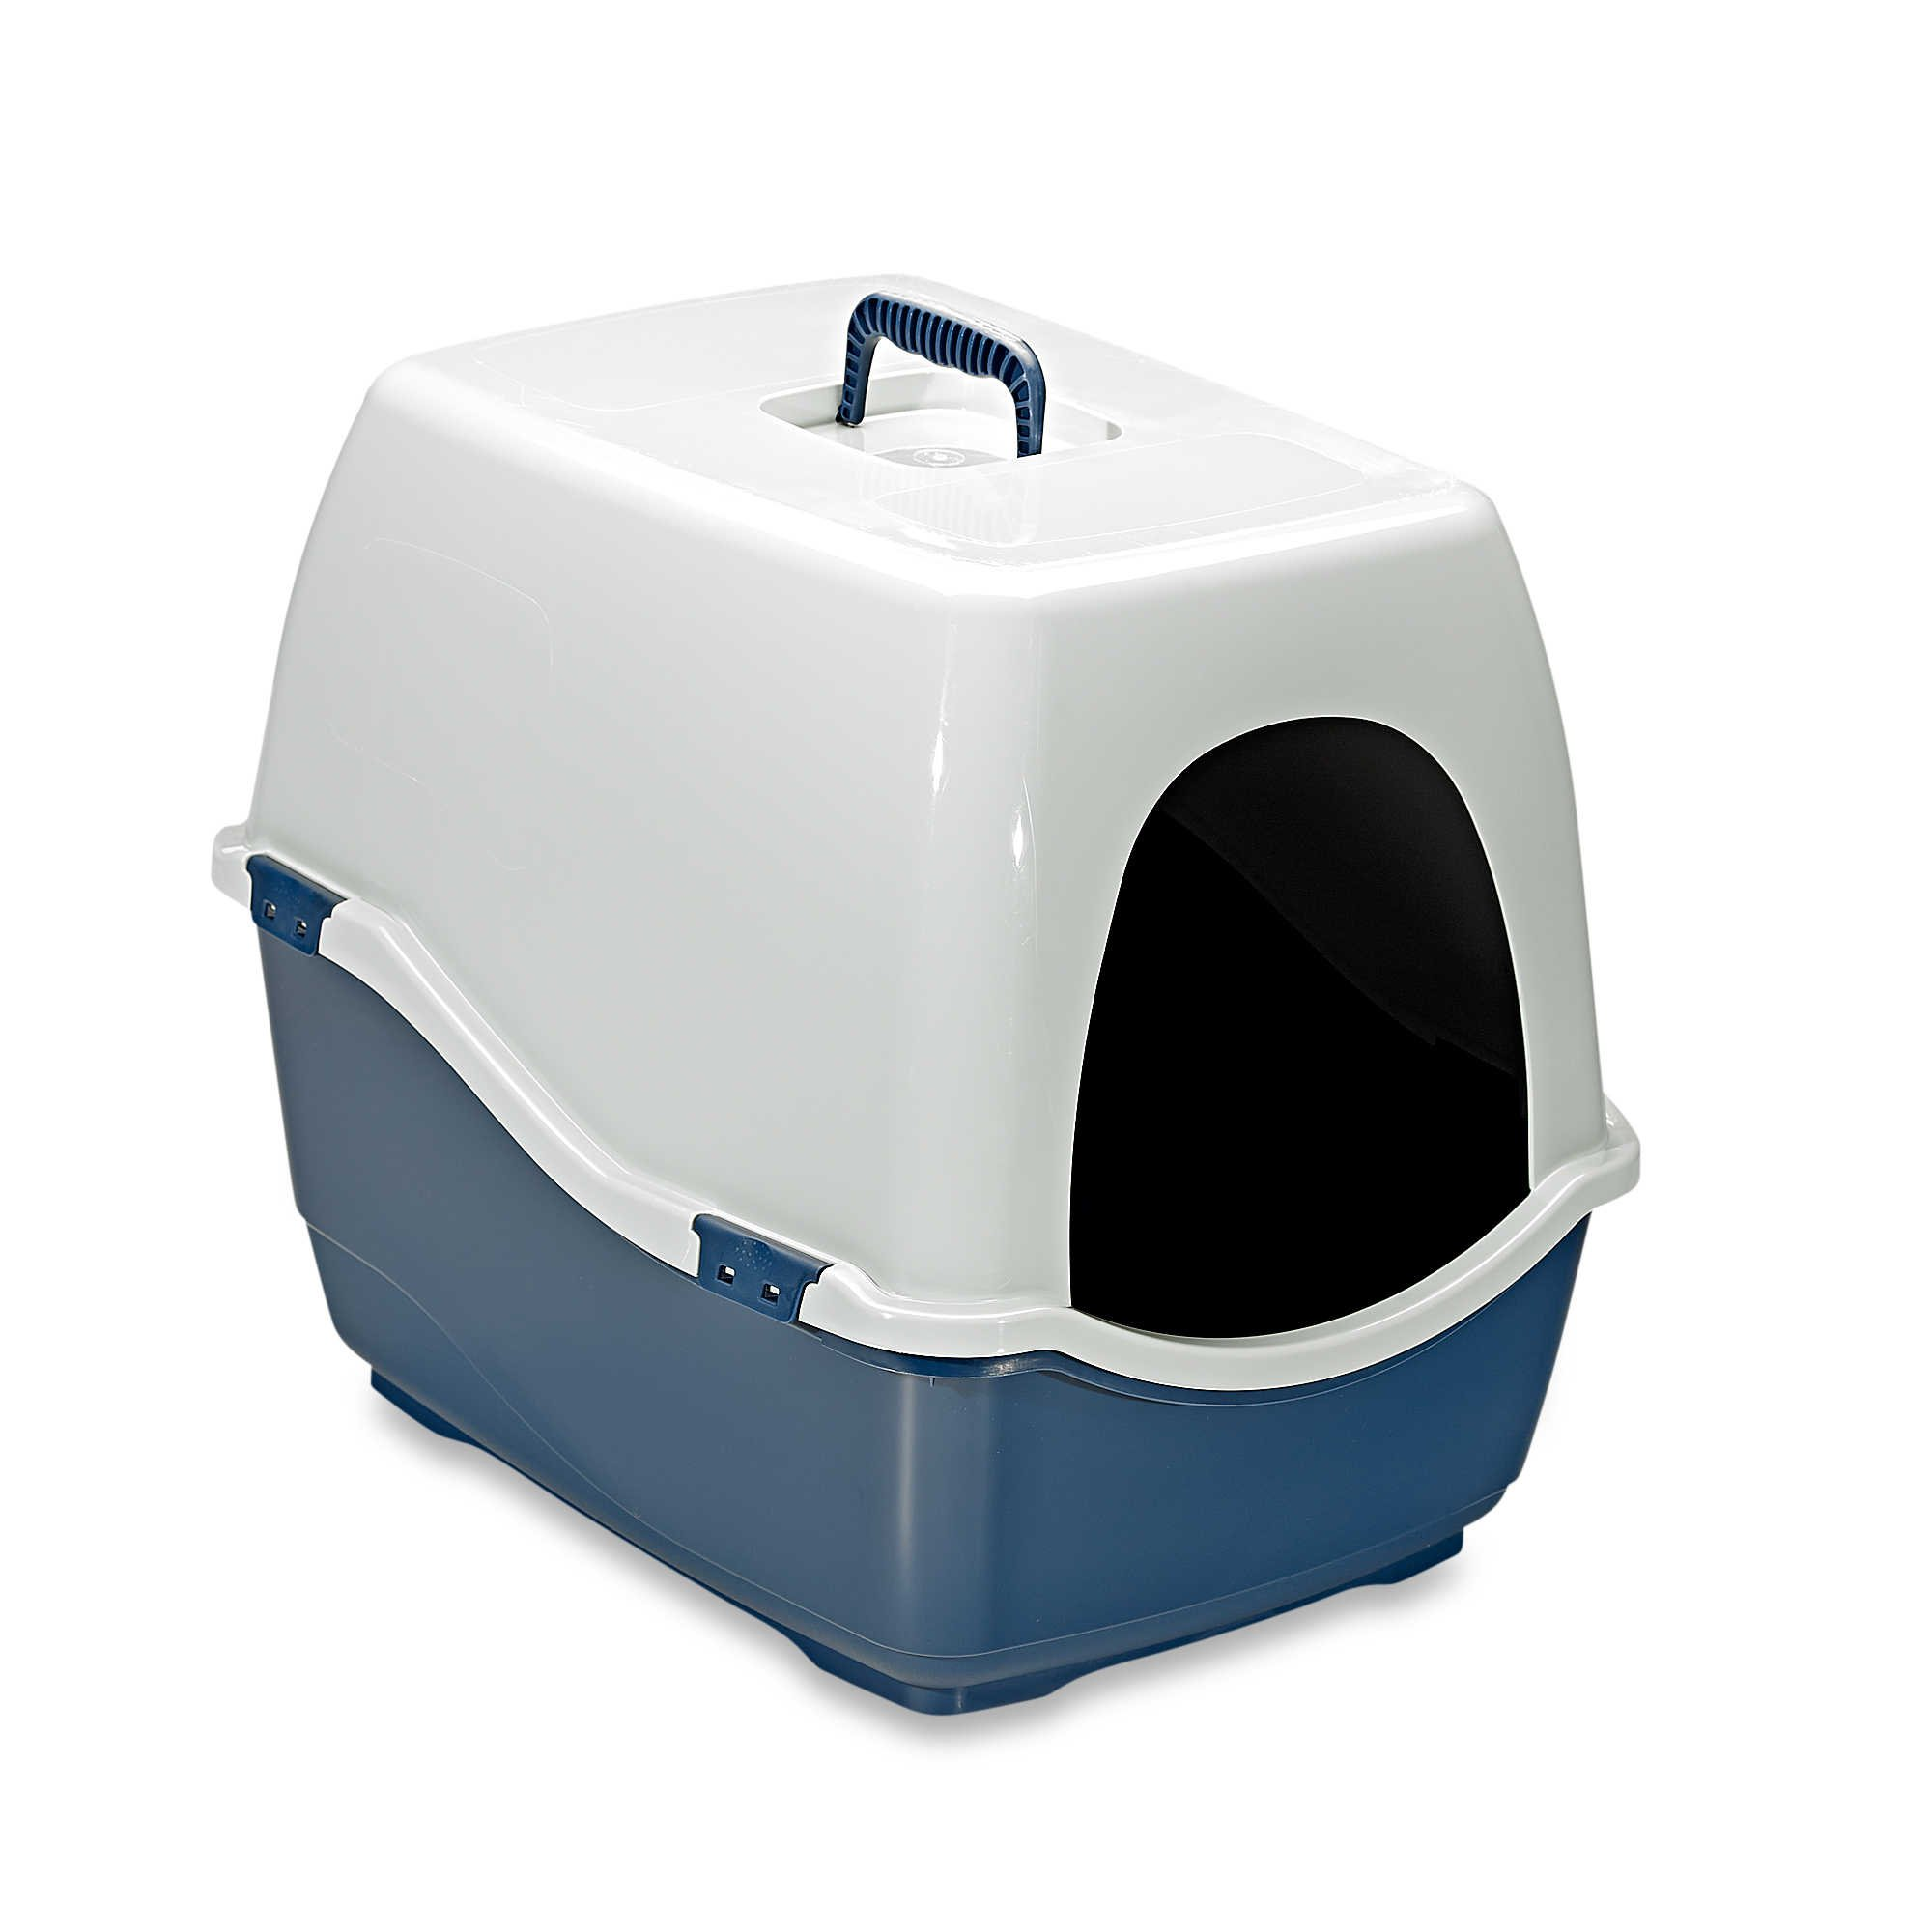 Marchioro Bill Eco Enclosed Extra-Large Cat Litter Pan in Blue